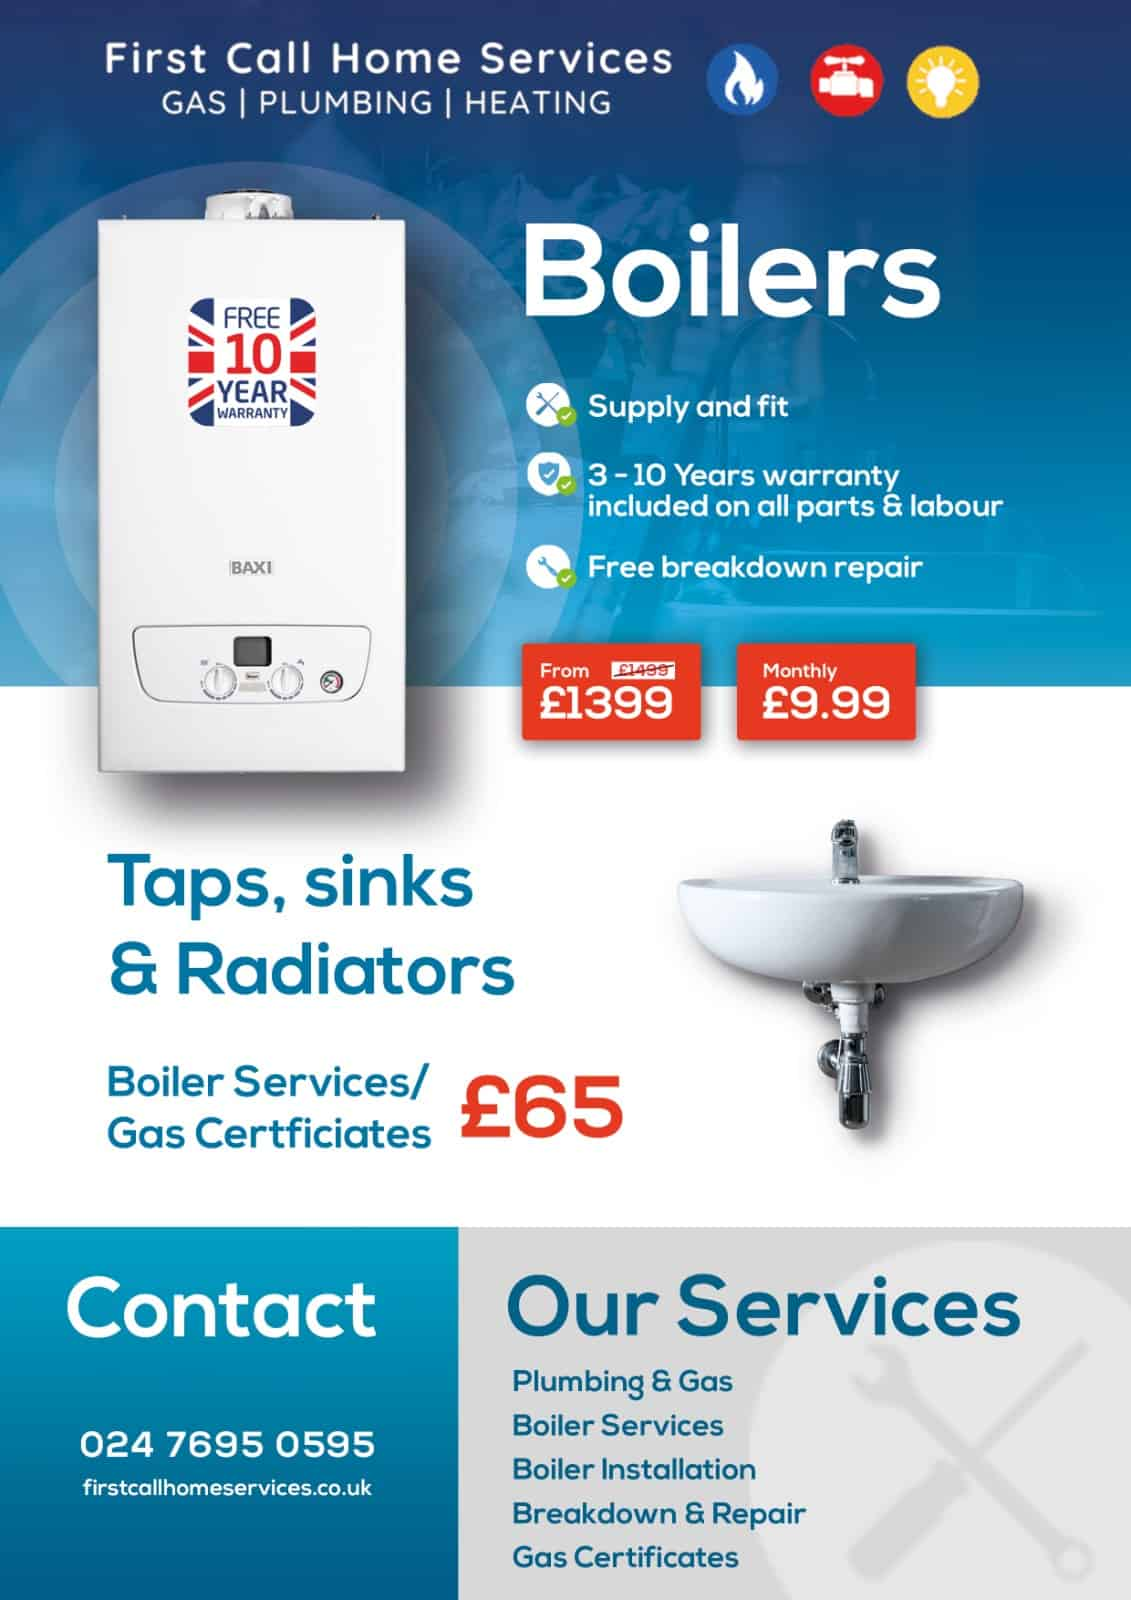 Boilers from £1399 or £9.99 a month on finace